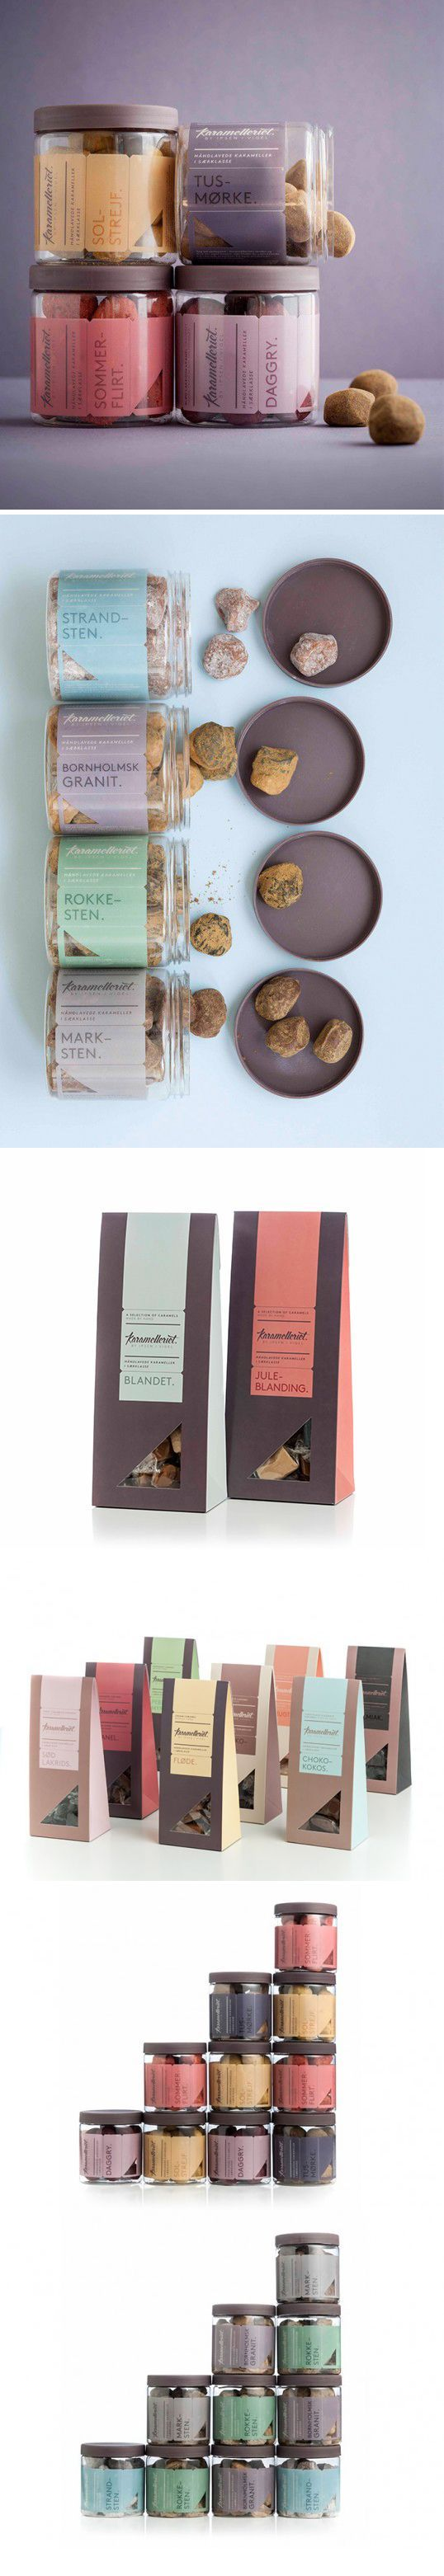 Chocolate #packaging design. Great colors palette http://lovelypackage.com/karamelleriet/